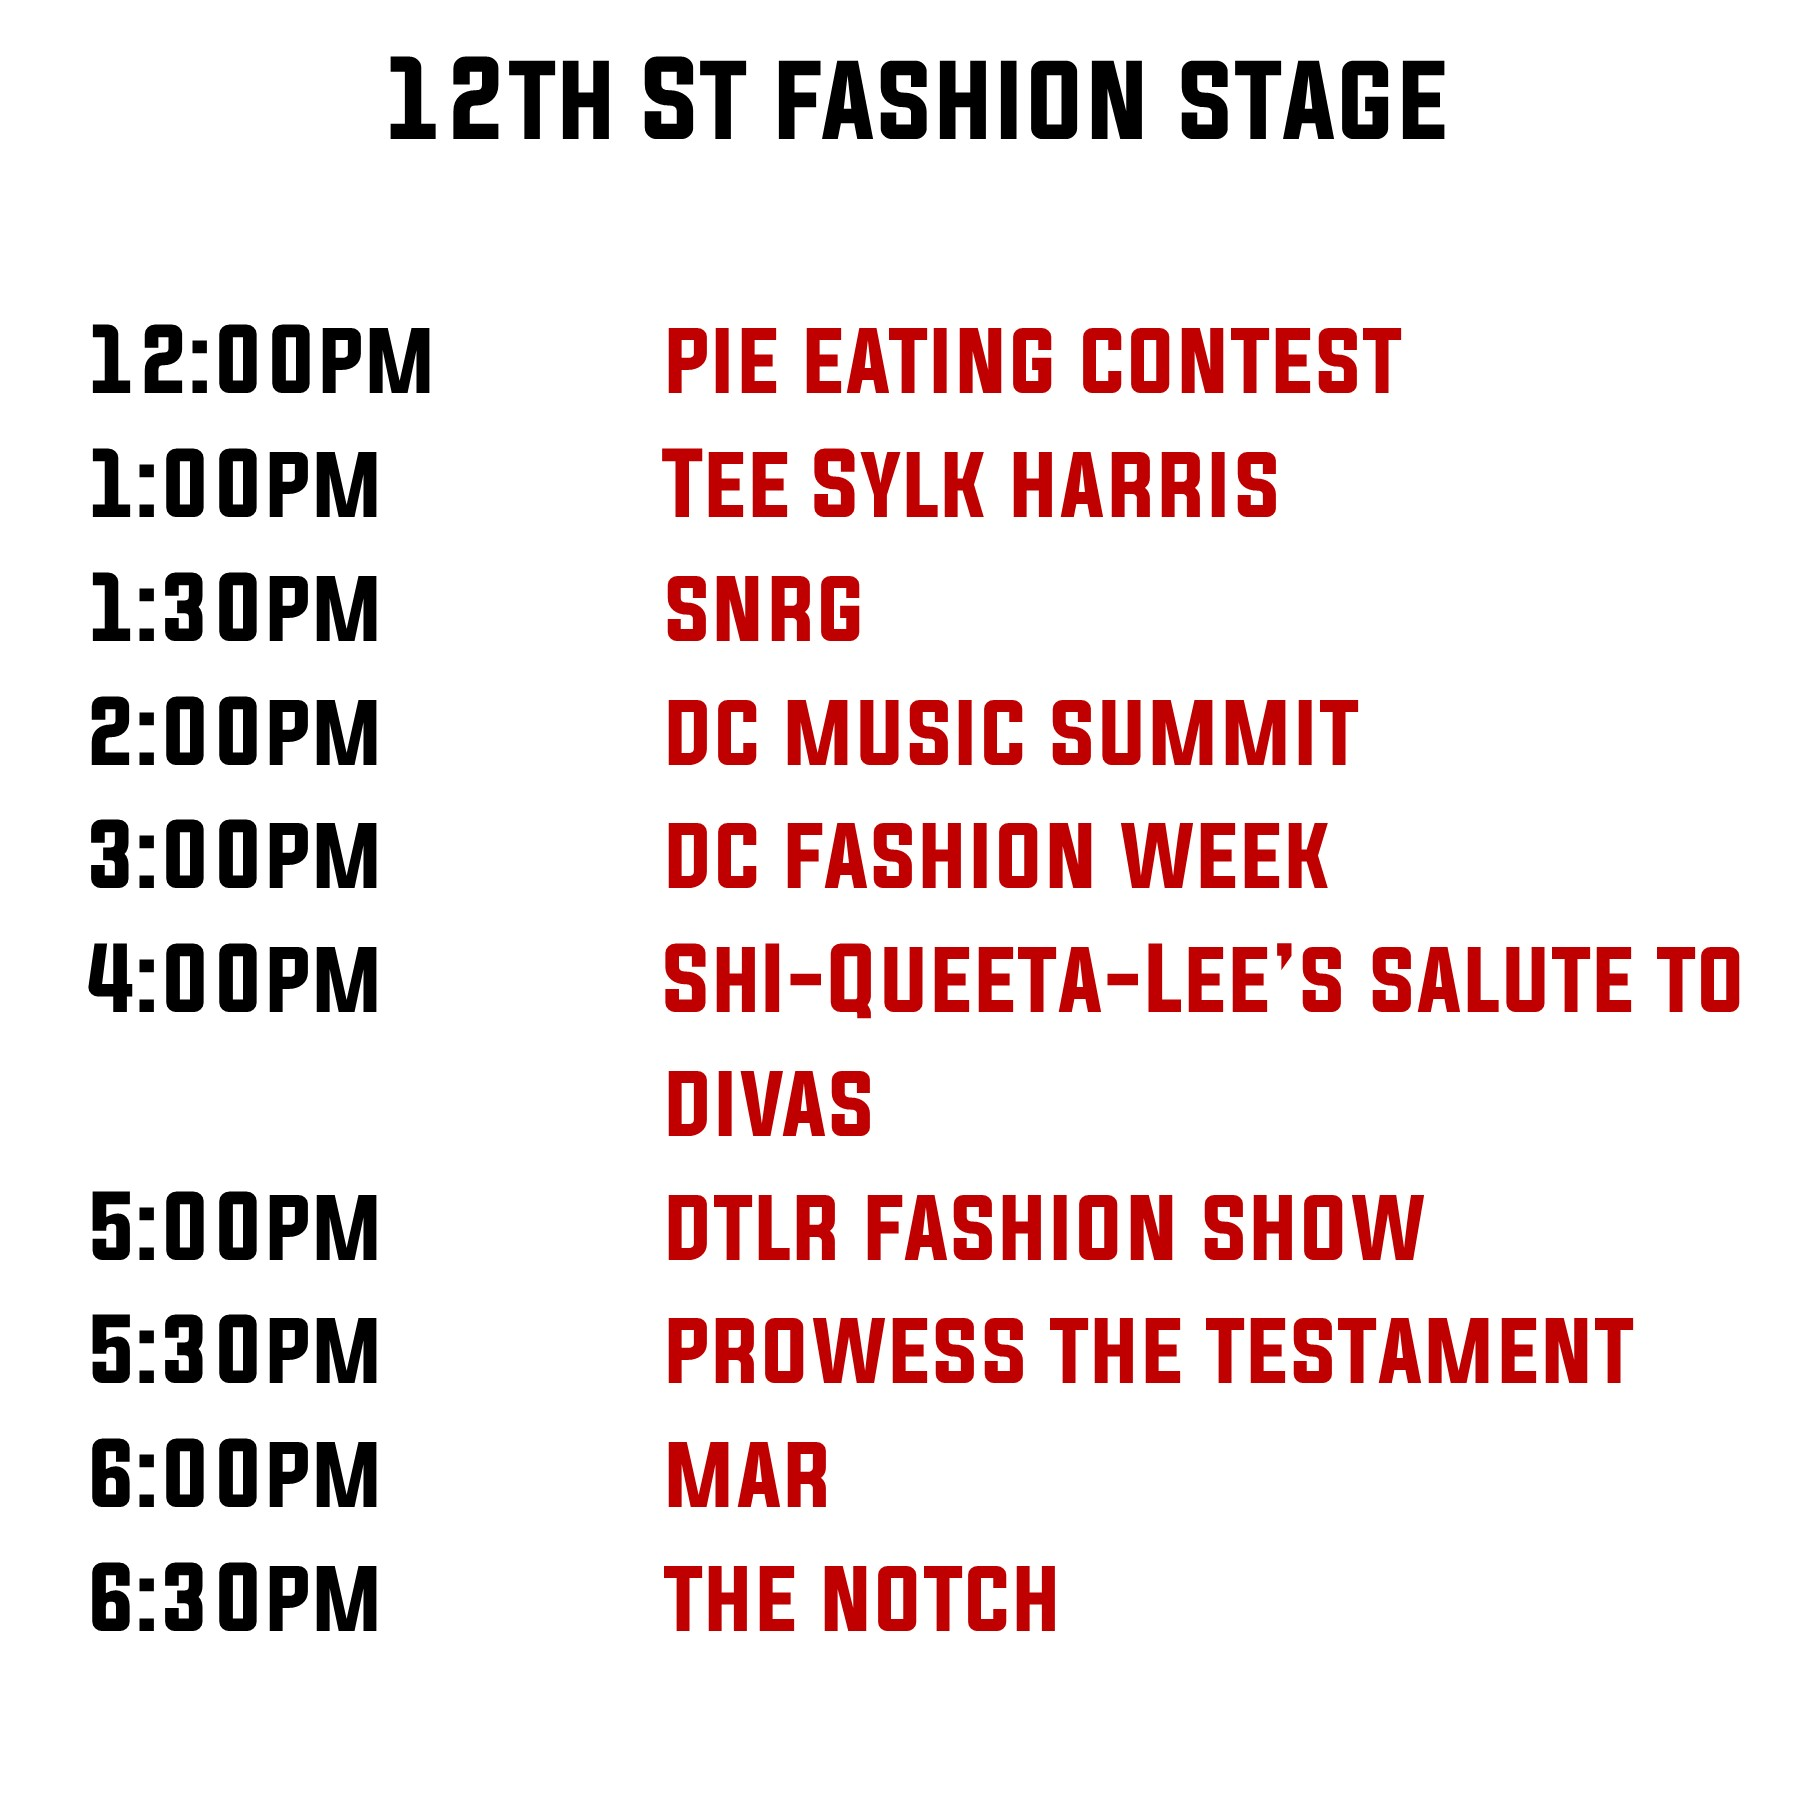 12th Stage line up